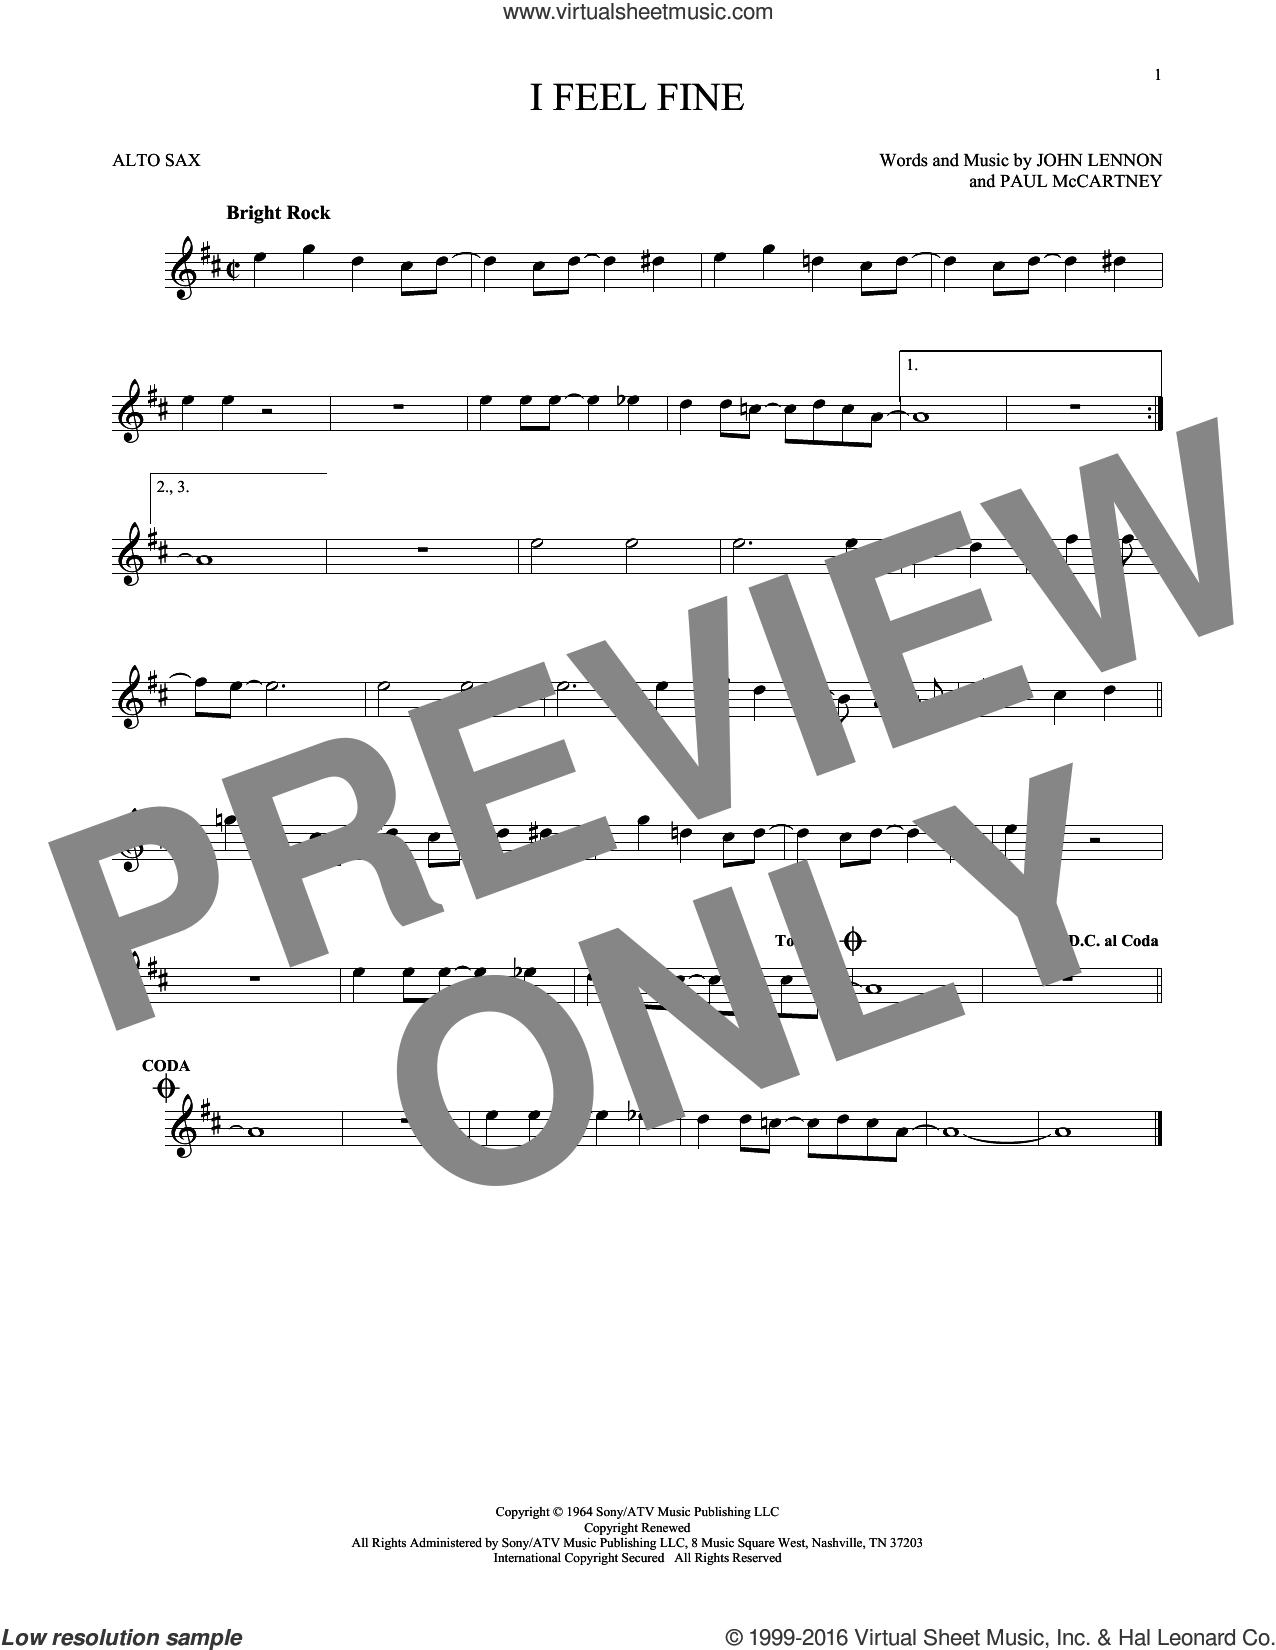 I Feel Fine sheet music for alto saxophone solo by The Beatles, John Lennon and Paul McCartney, intermediate skill level